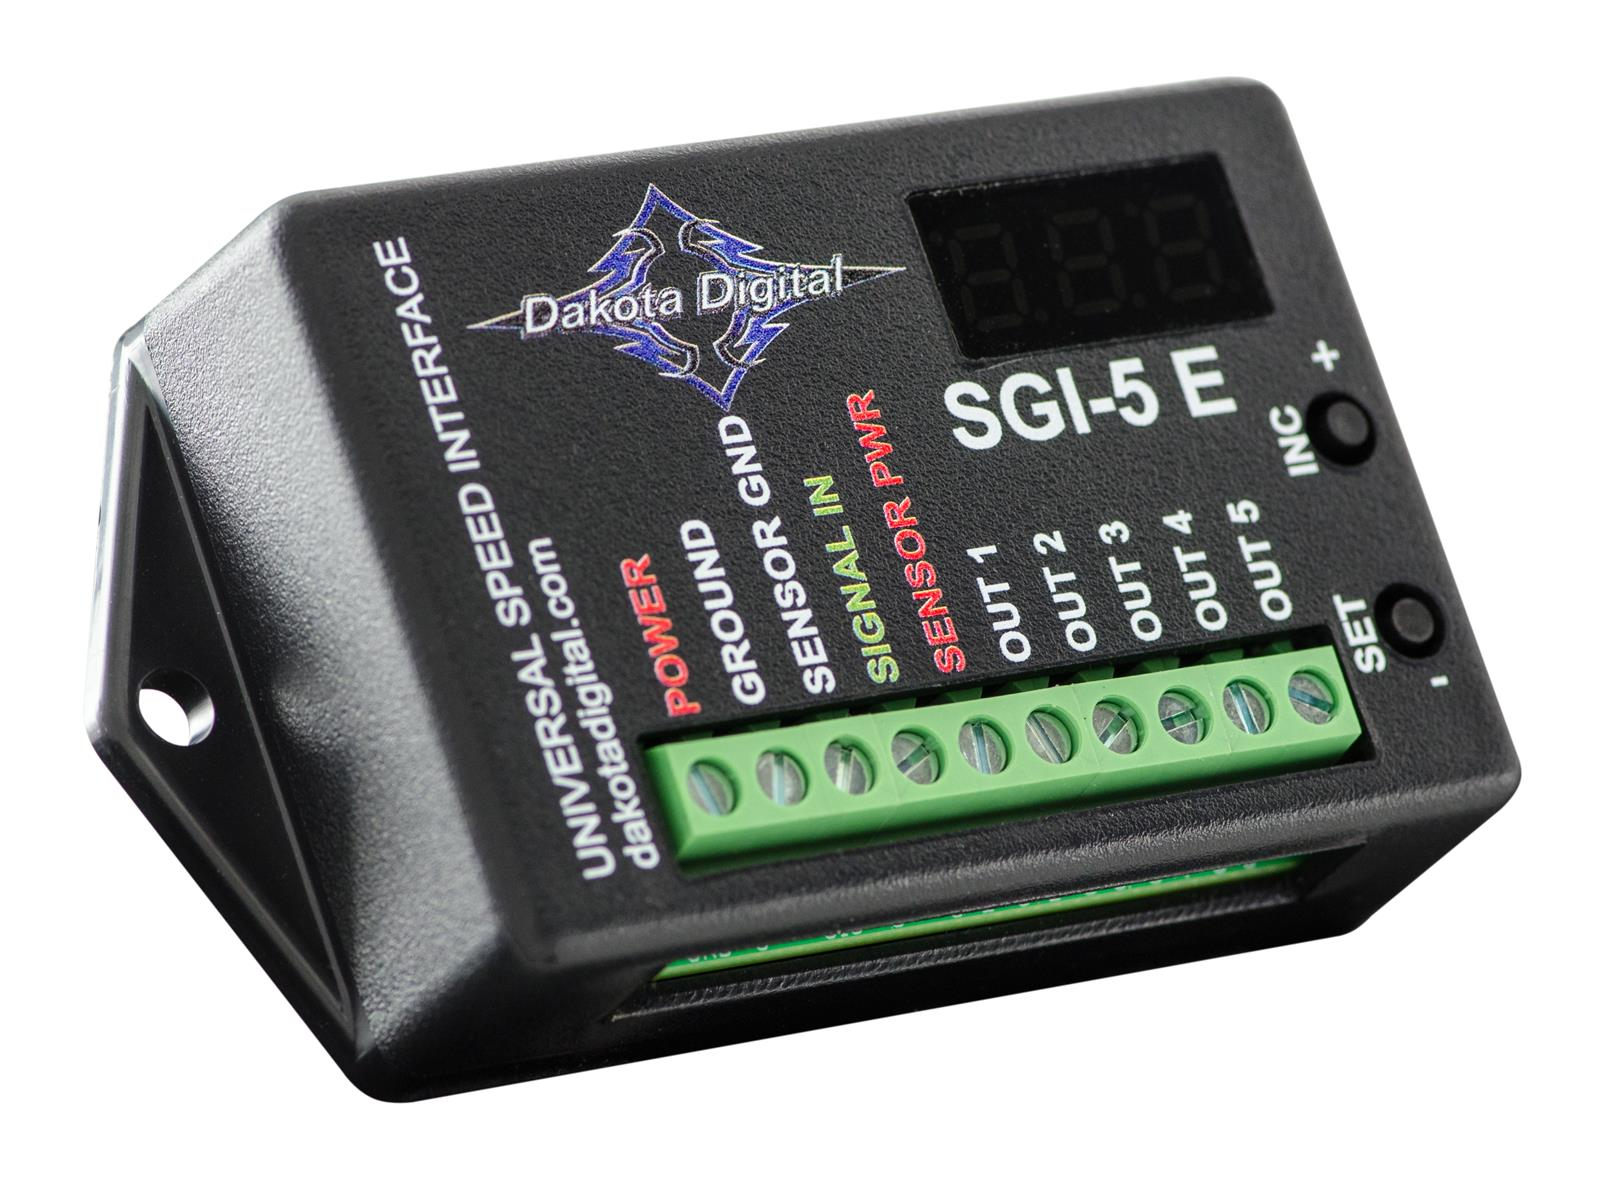 dakota digital sgi-5e universal speedometer signal interfaces sgi-5e - free  shipping on orders over $99 at summit racing